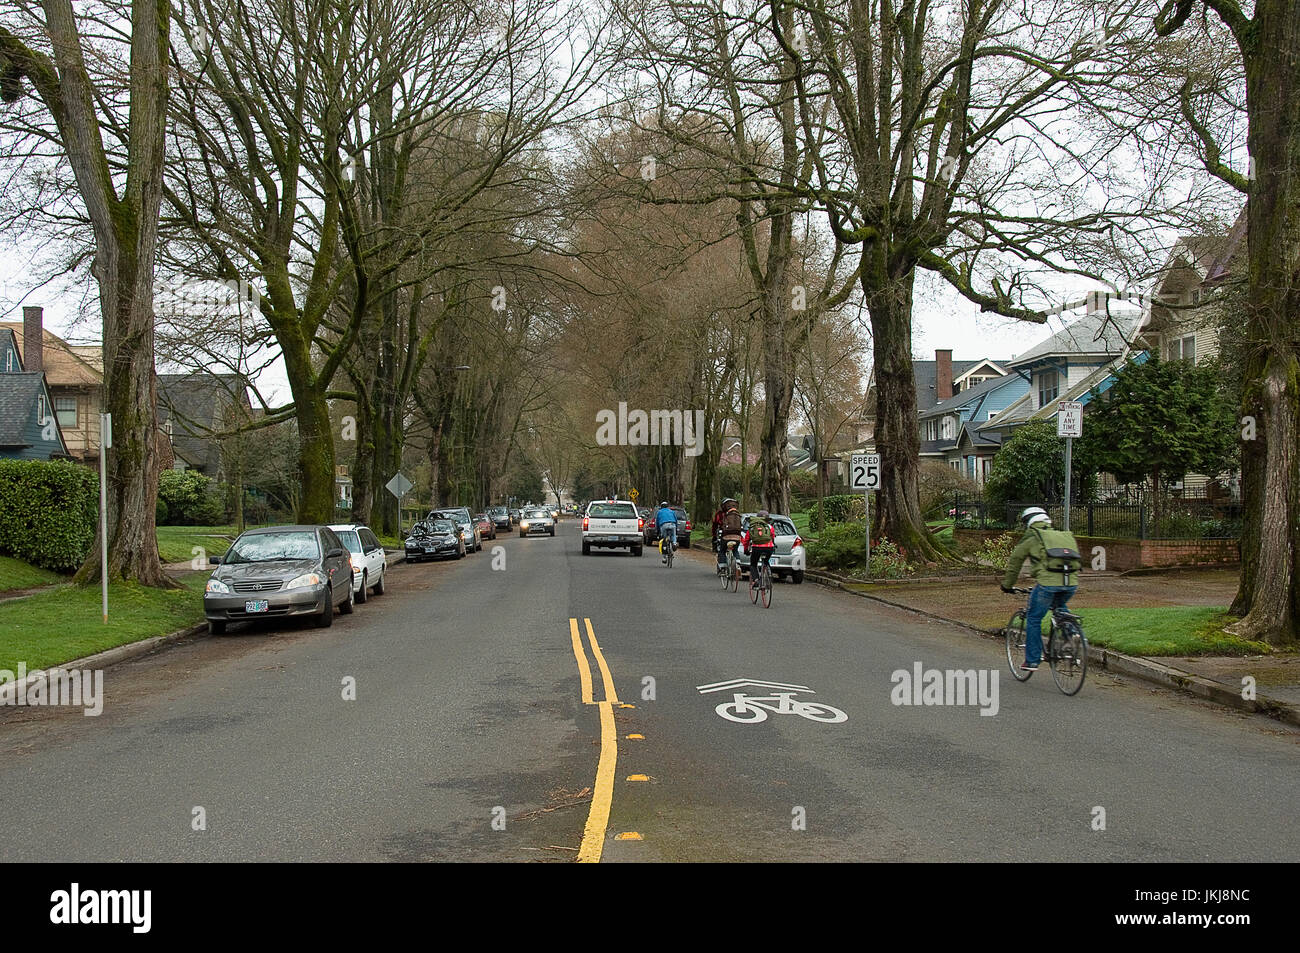 A line of bicyclists sharing the road with automobiles in the Ladds Edition neighborhood of Portland, Oregon. - Stock Image